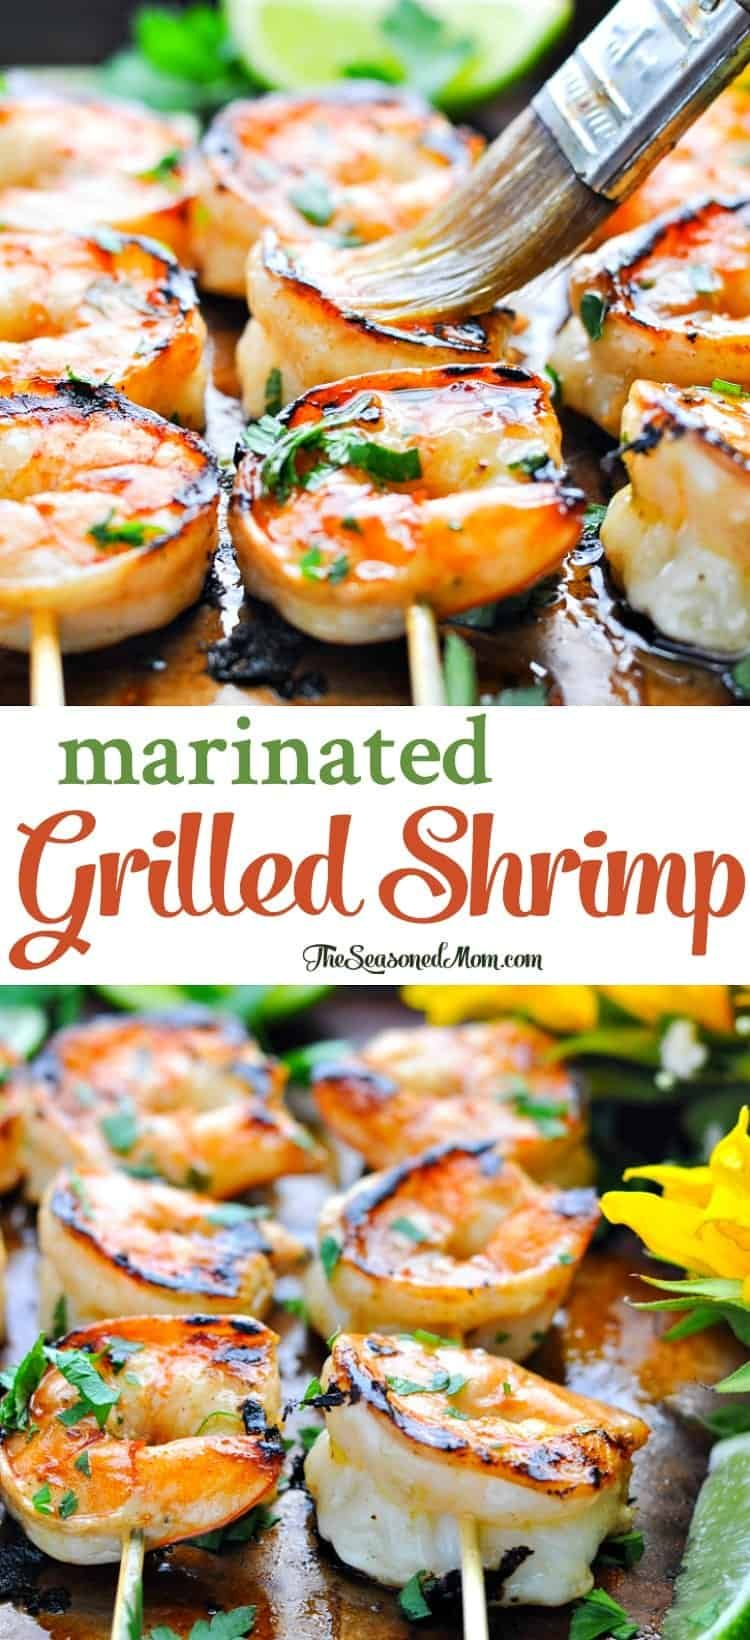 Marinated Grilled Shrimp images